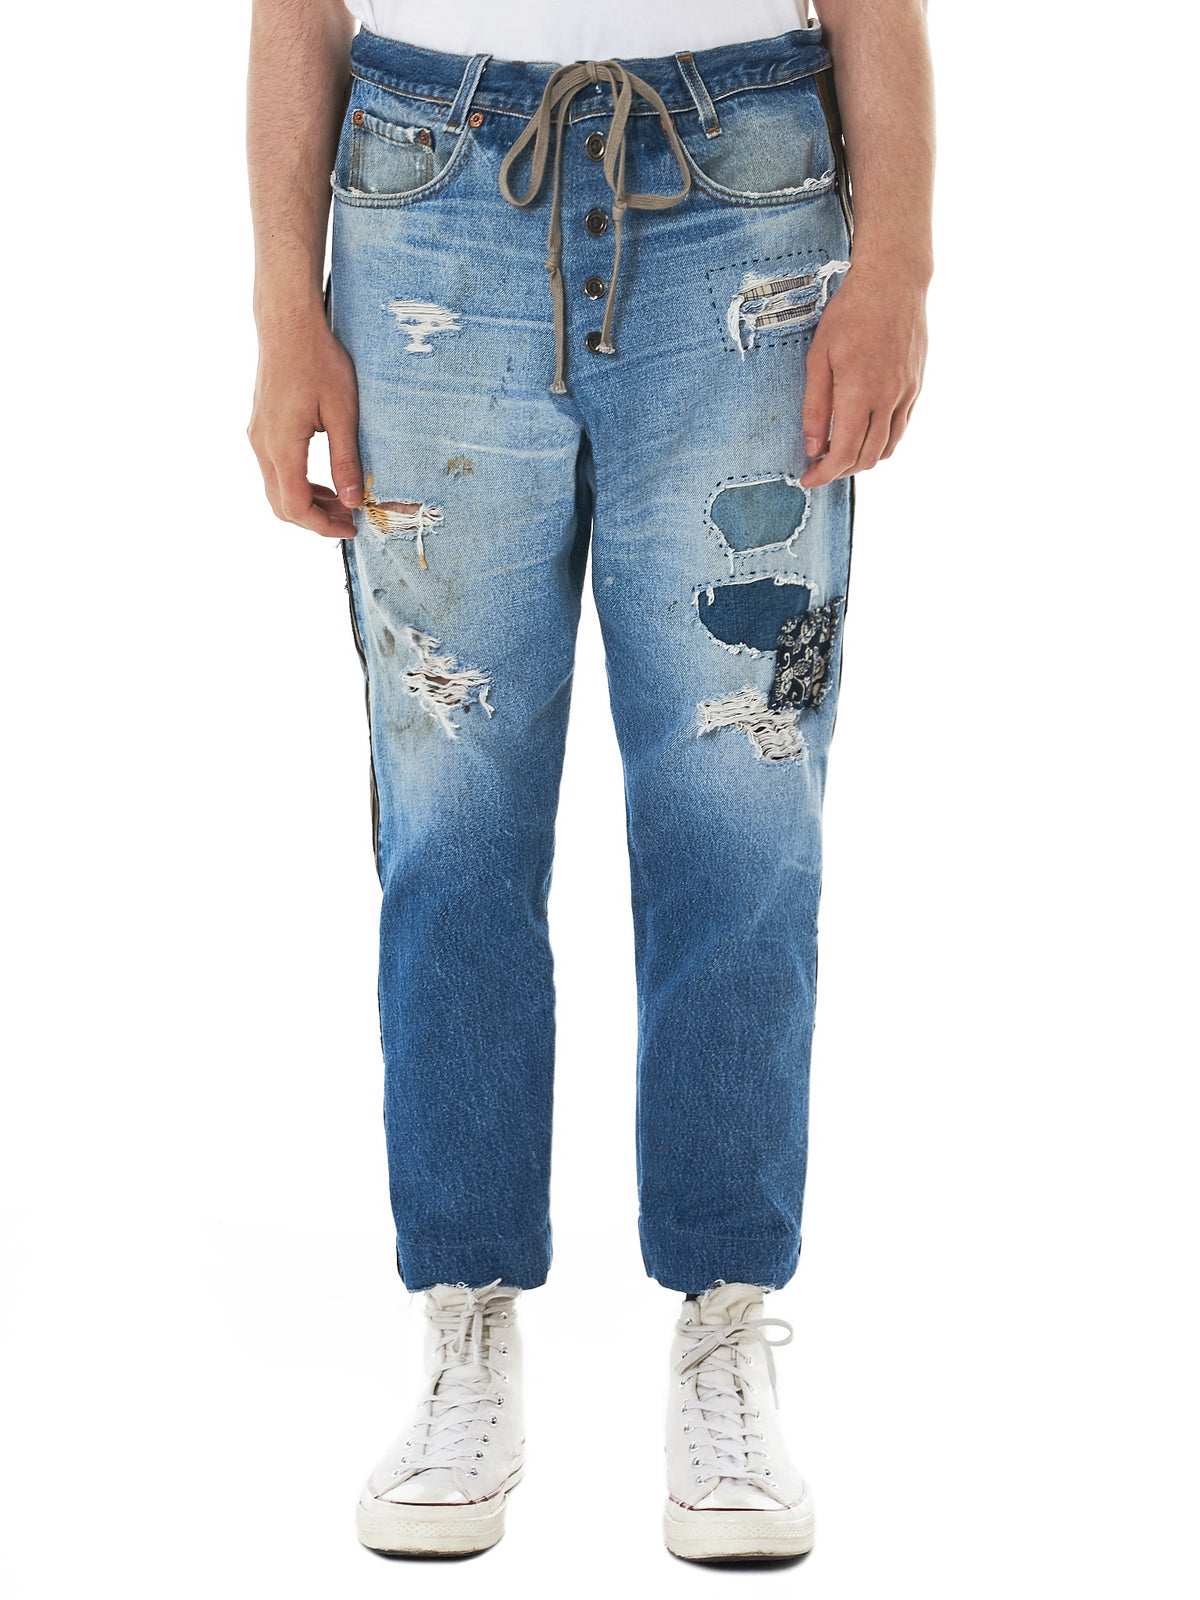 Greg Lauren Denim Patchwork -HLorenzo front